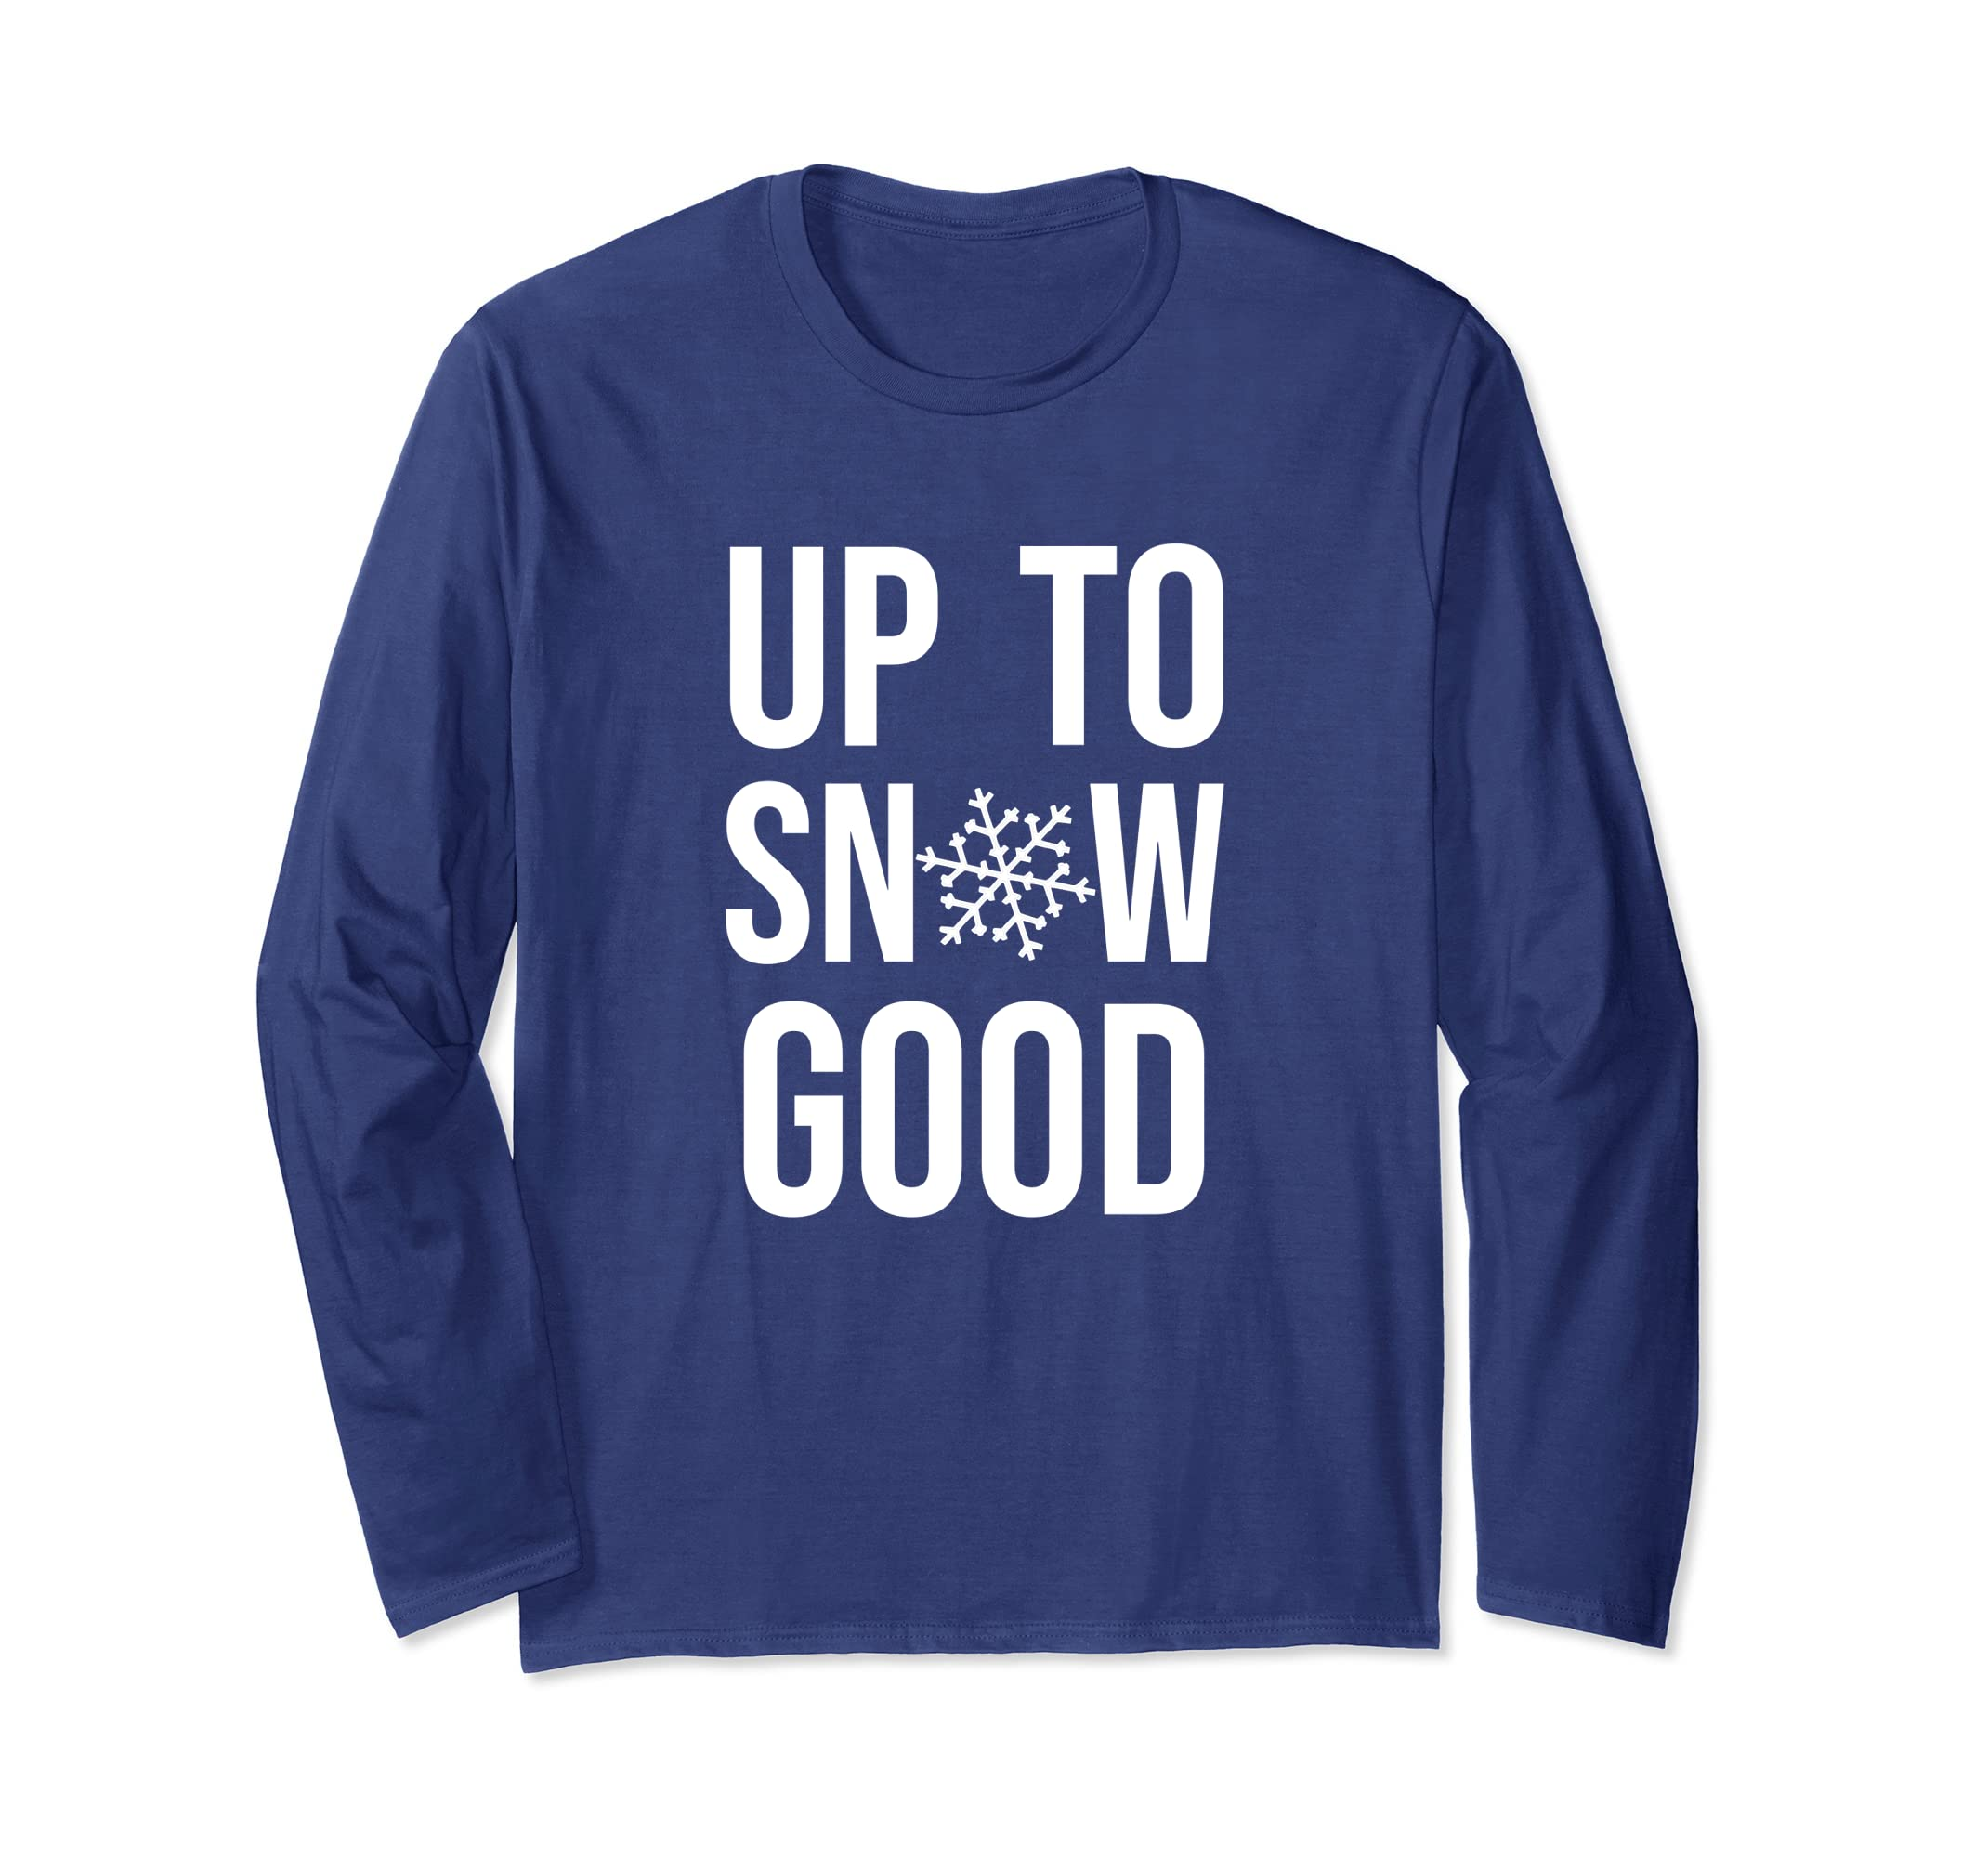 85c2d576 Amazon.com: Up to Snow Good Tshirt for Men Women Kids,Cool Holiday Gifts:  Clothing